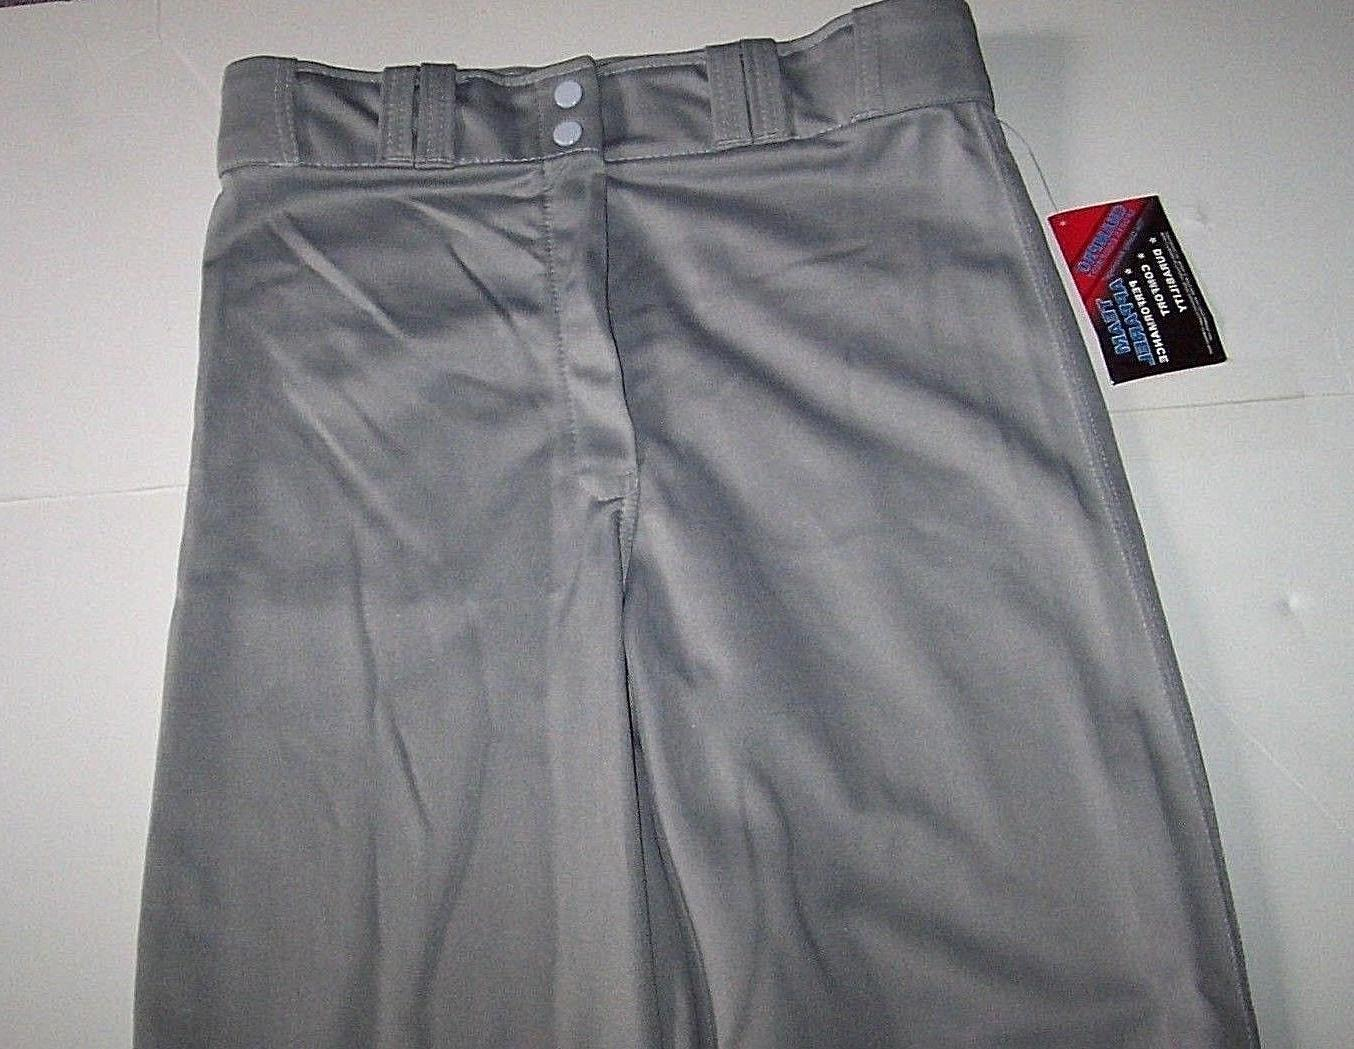 CHAMPRO GRAY BASEBALL PANTS MENS ADULT MEDIUM M 30-32 WAIST